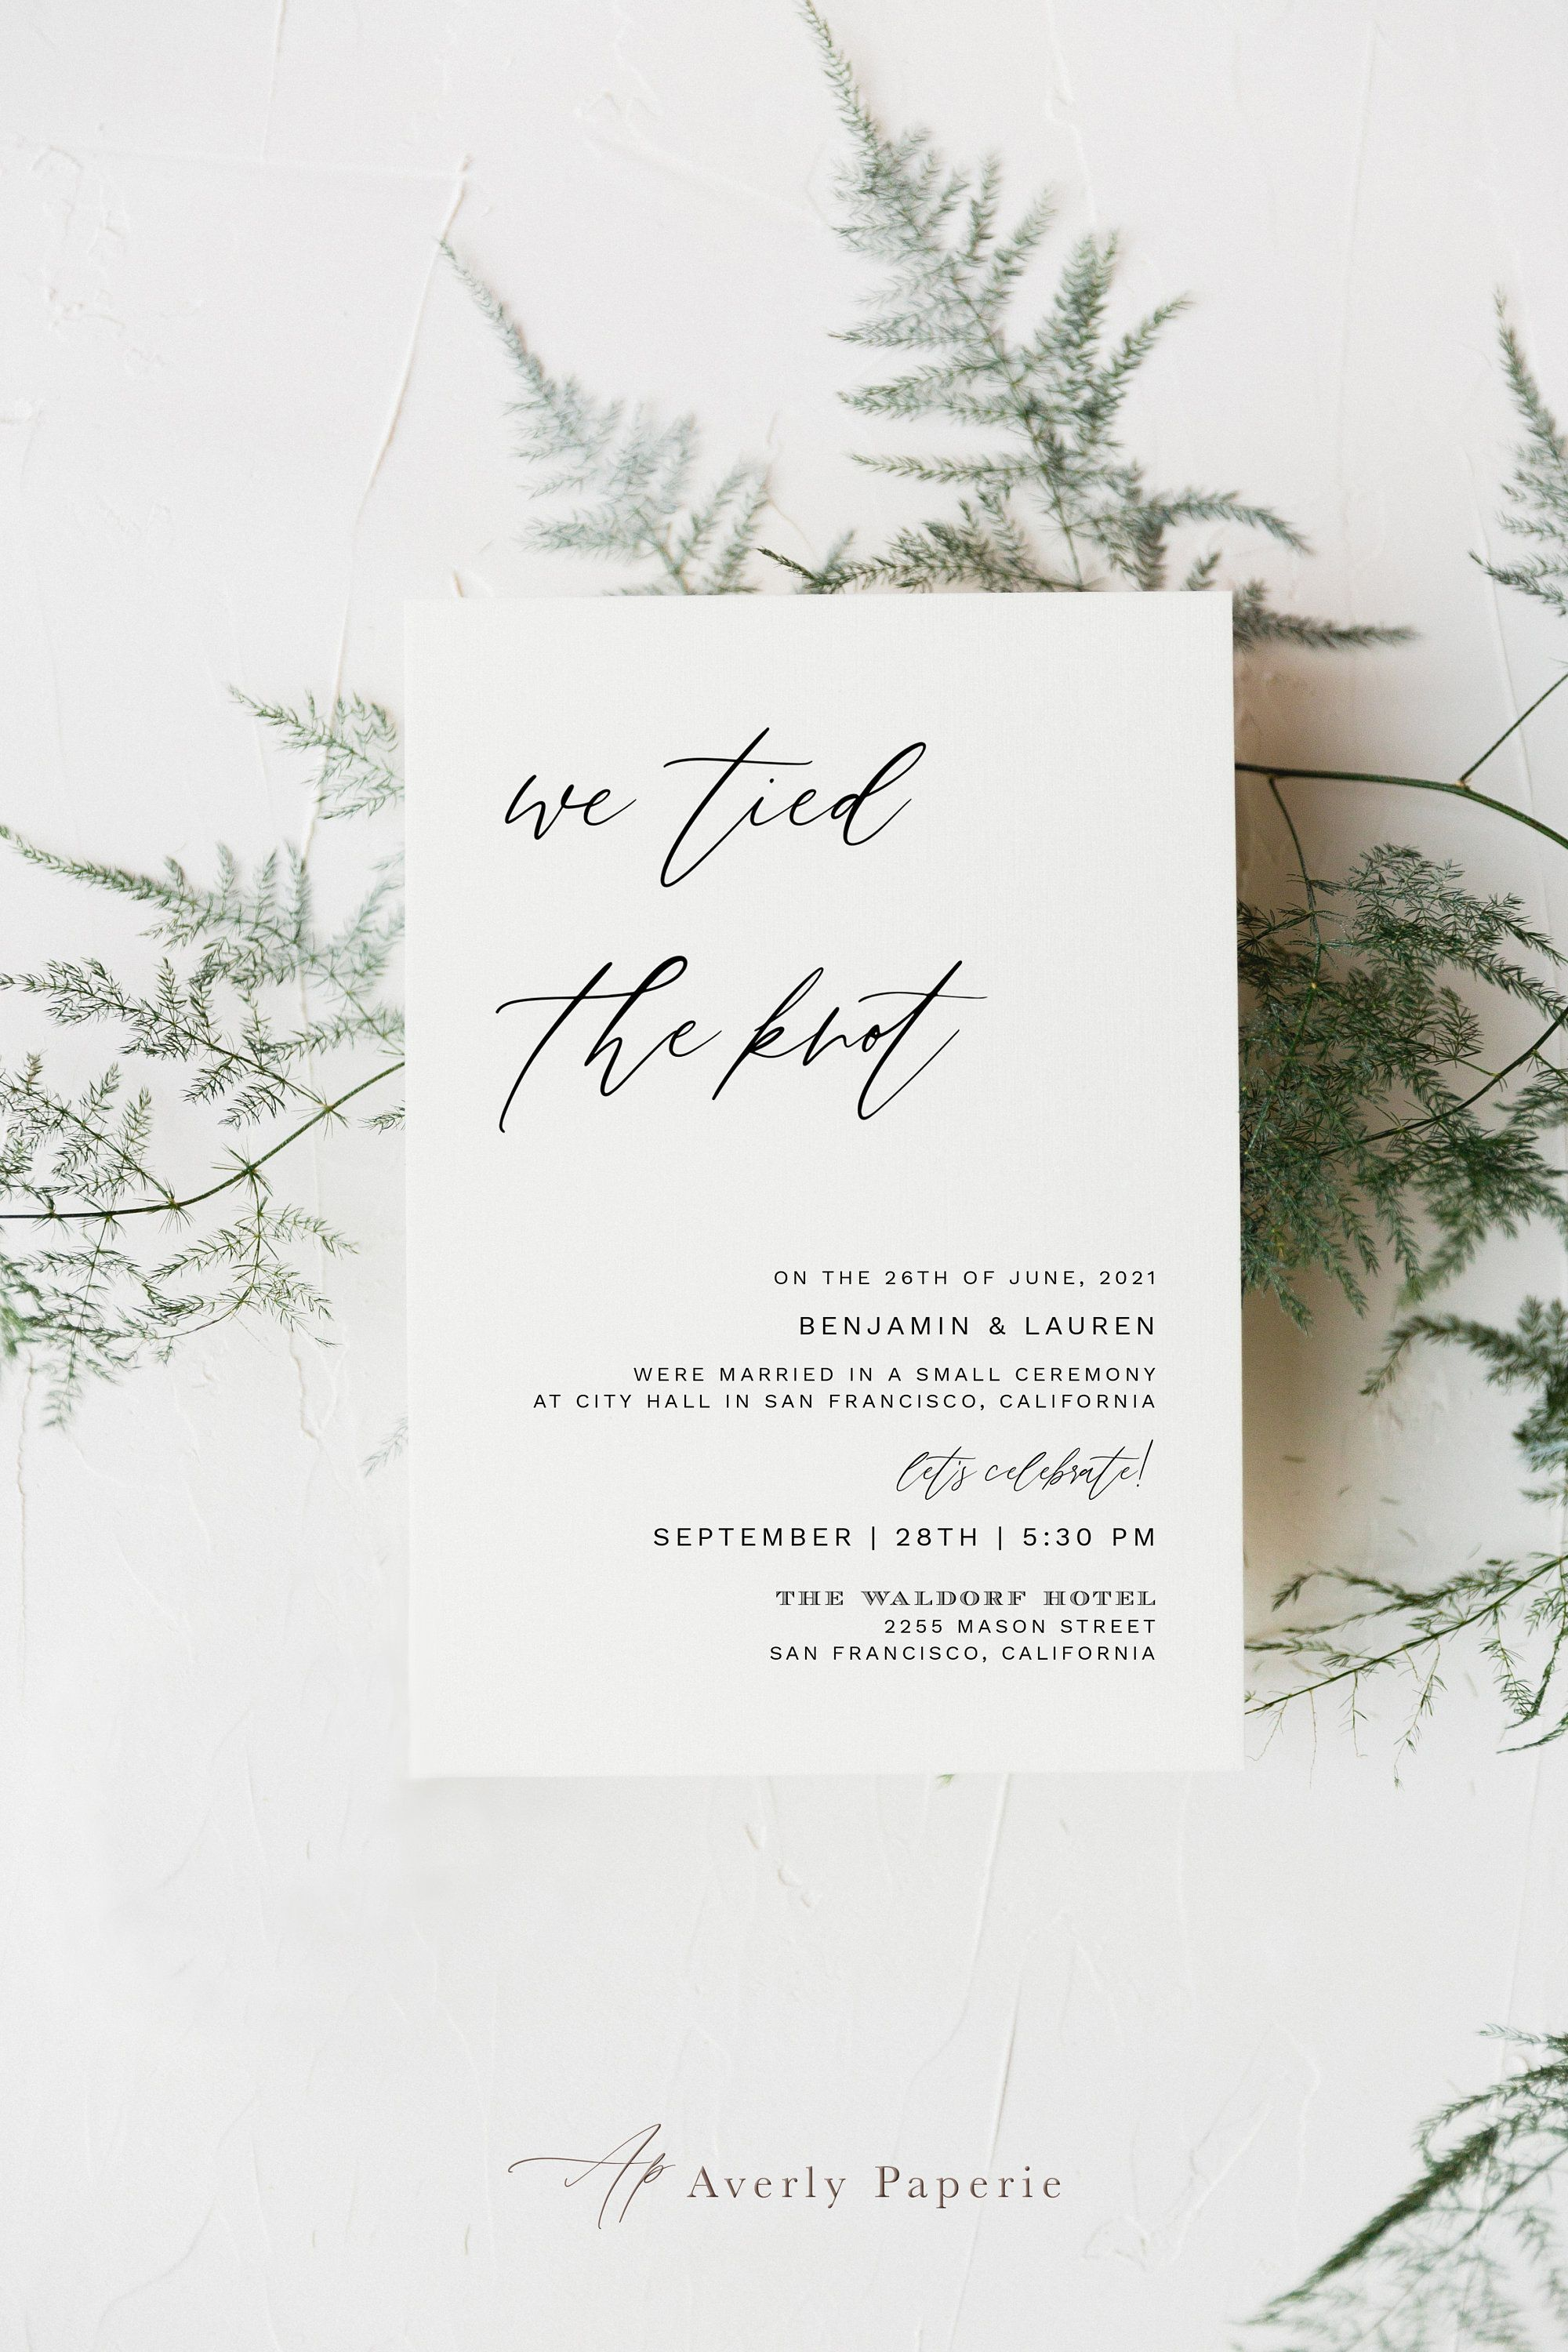 We Tied The Knot Wedding Announcement Template, Simple